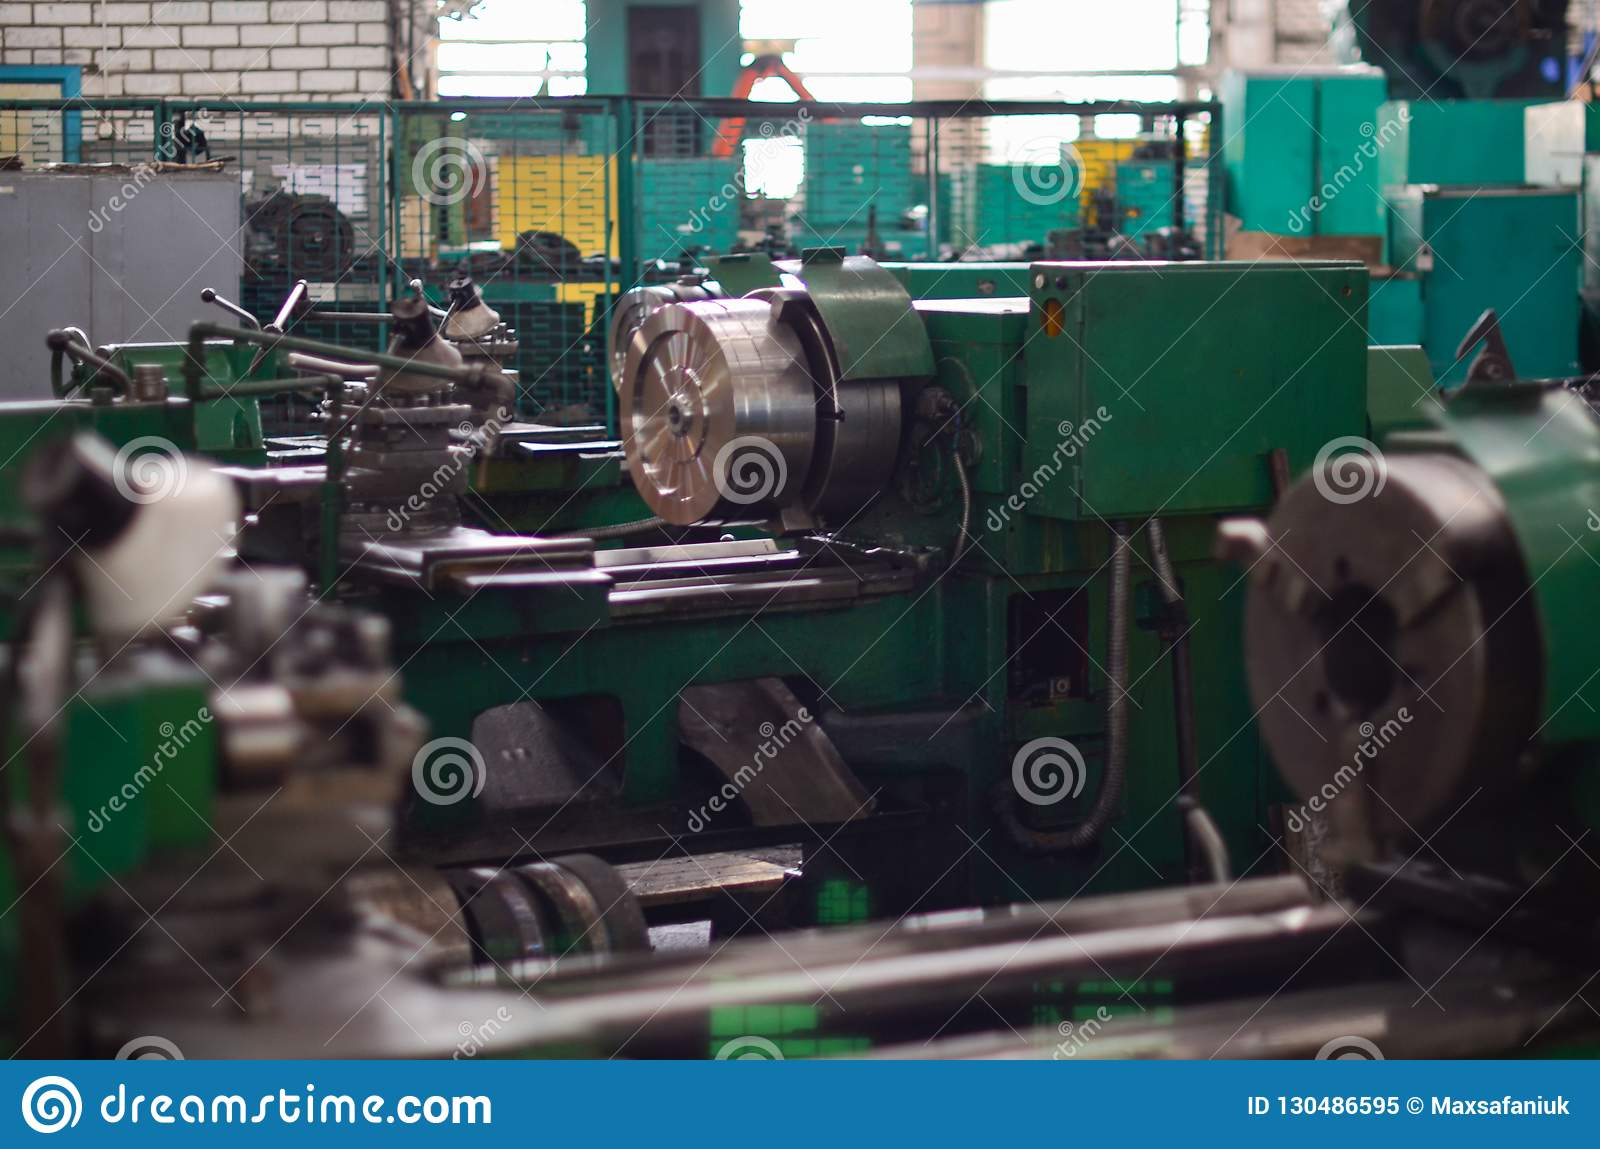 View of a large metal industrial machine in the shop for processing iron products